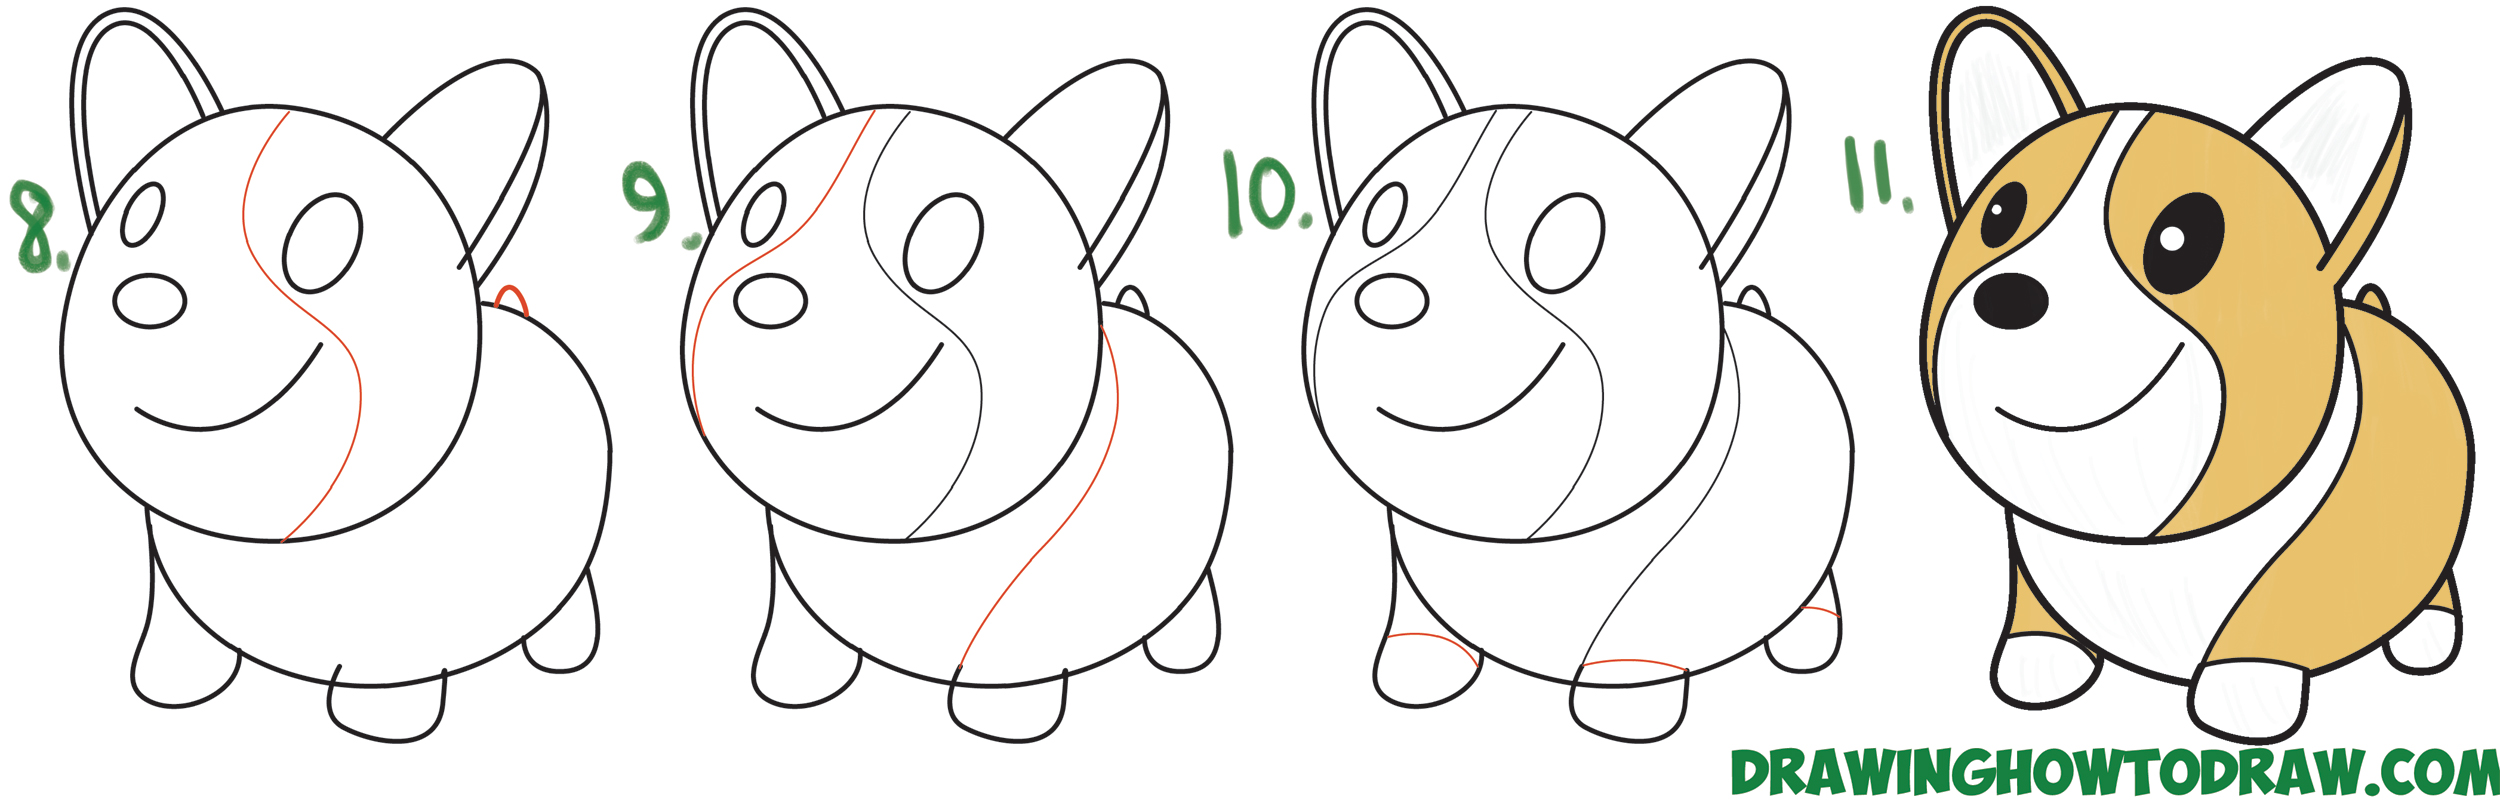 Learn How to Draw a Cute Cartoon / Kawaii / Chibi Corgi Simple Steps Drawing Lesson for Children